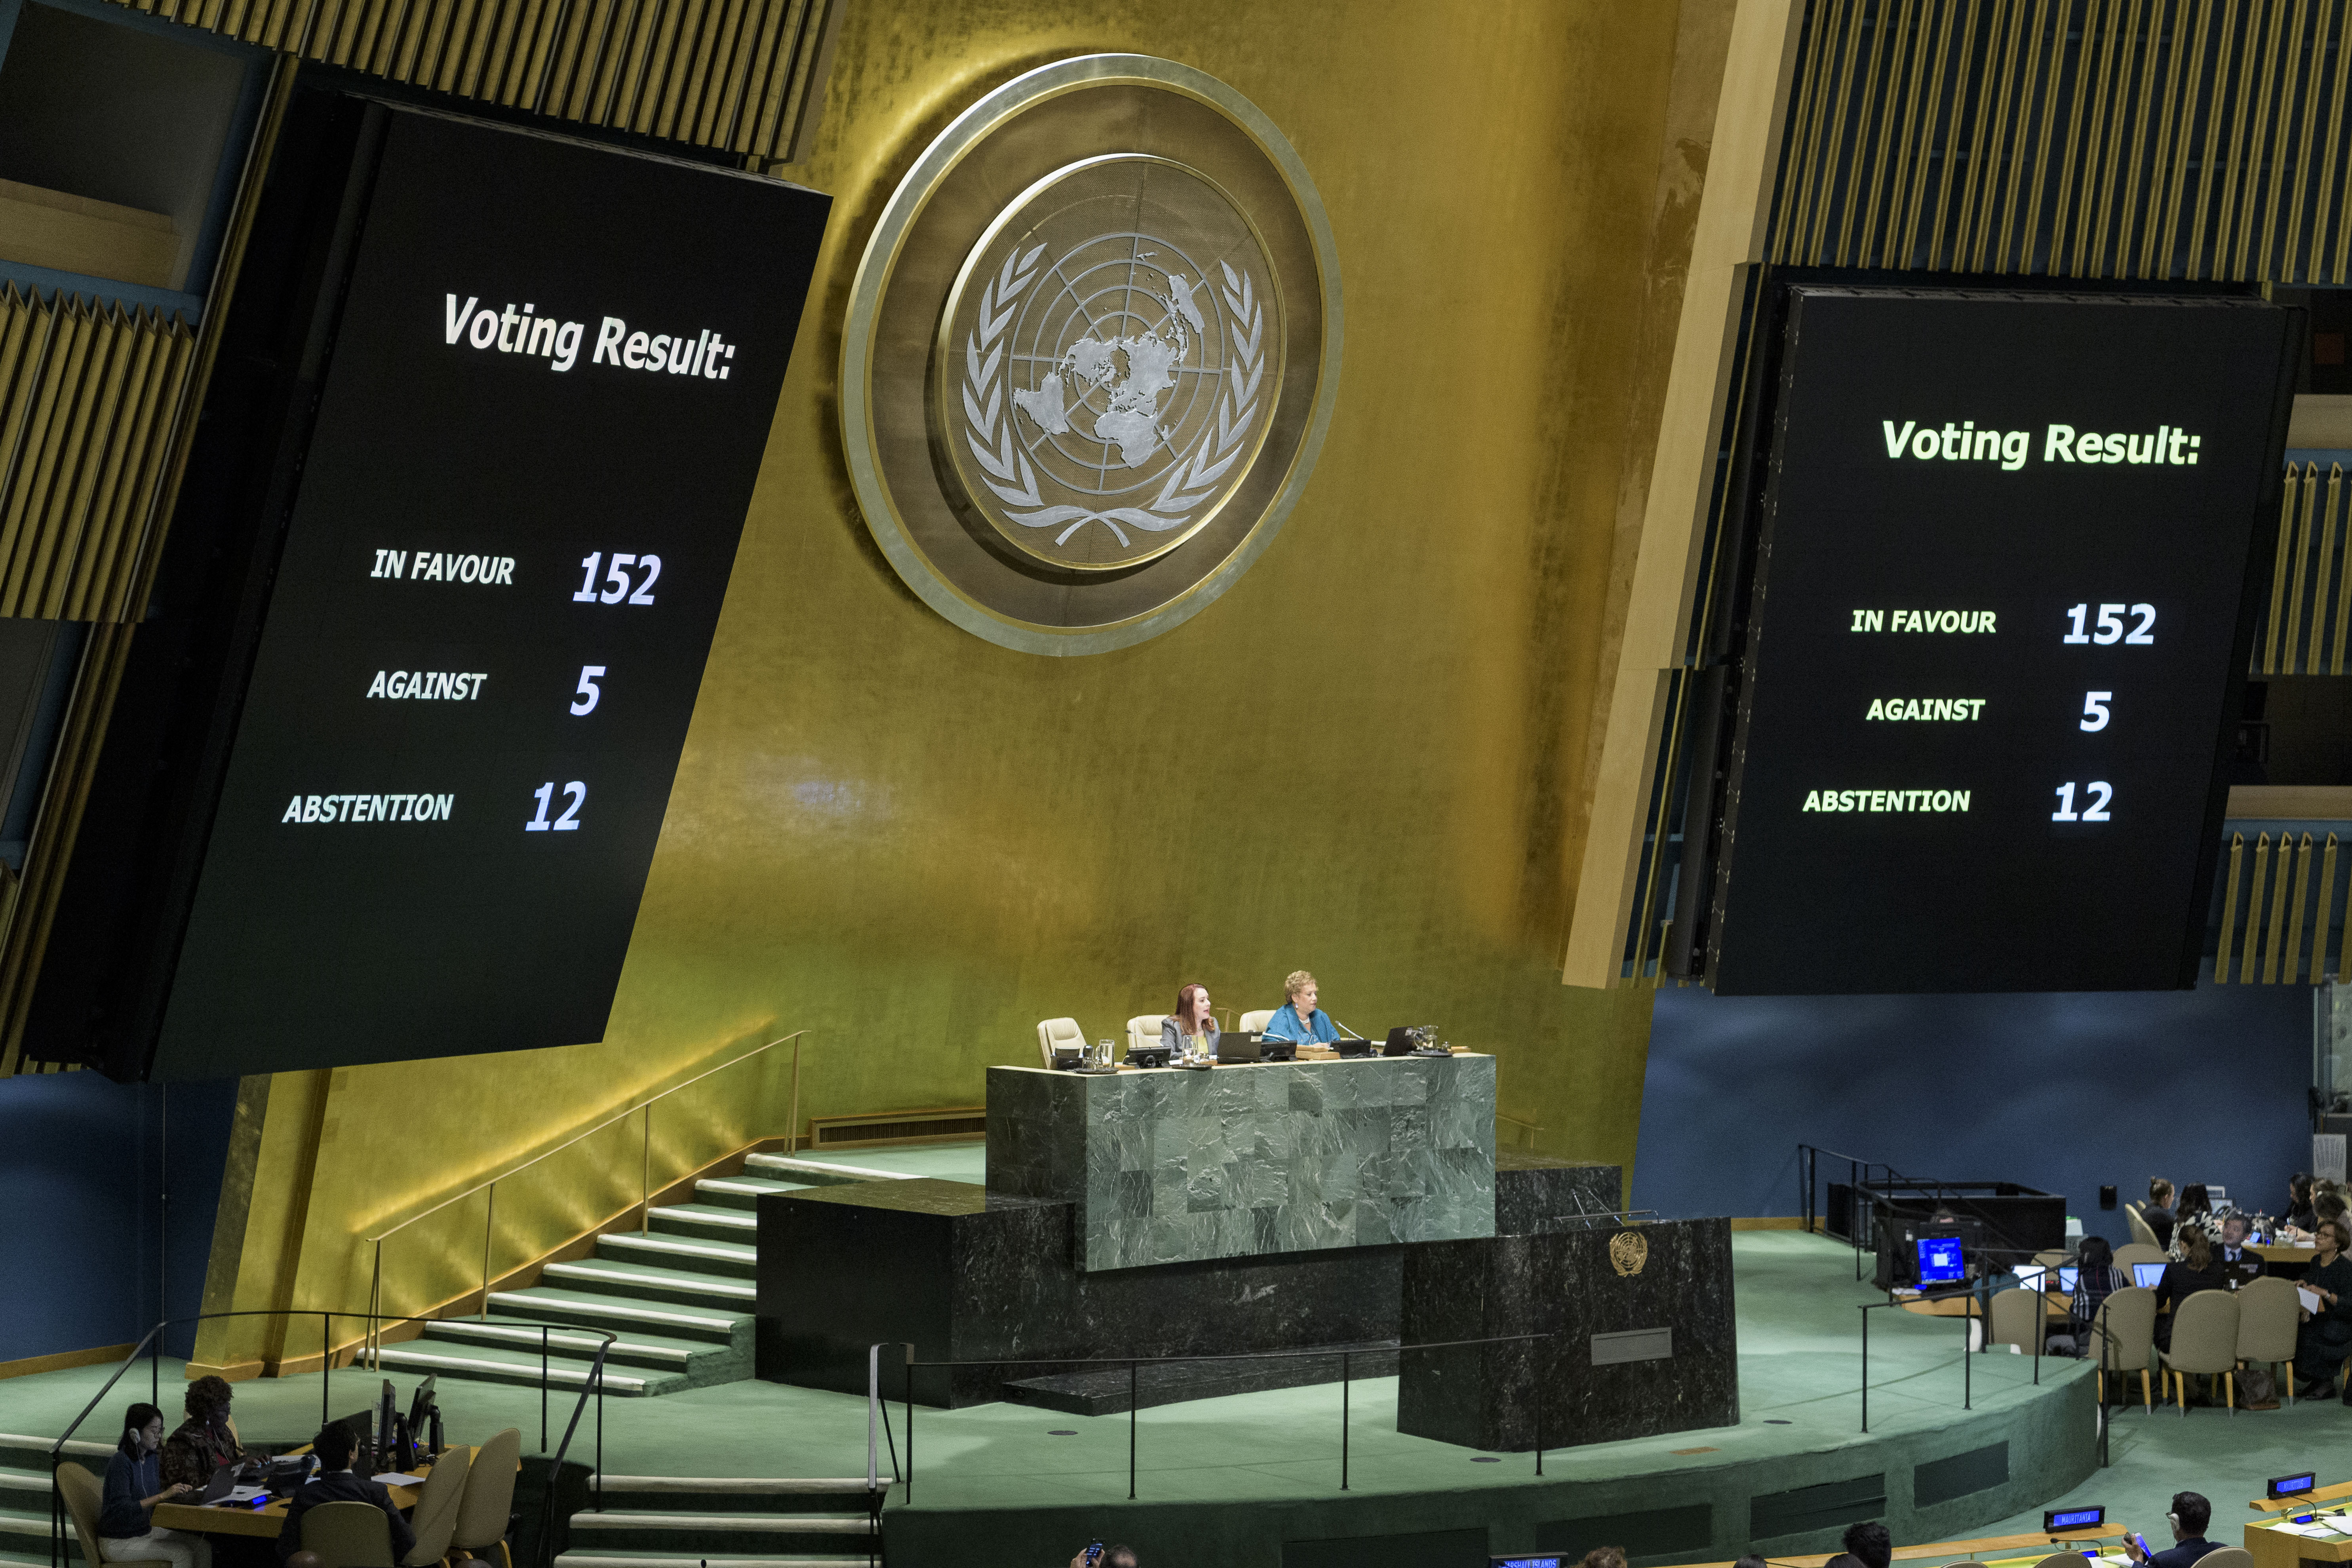 UN General Assembly officially adopts roadmap for migrants to improve safety, ease suffering